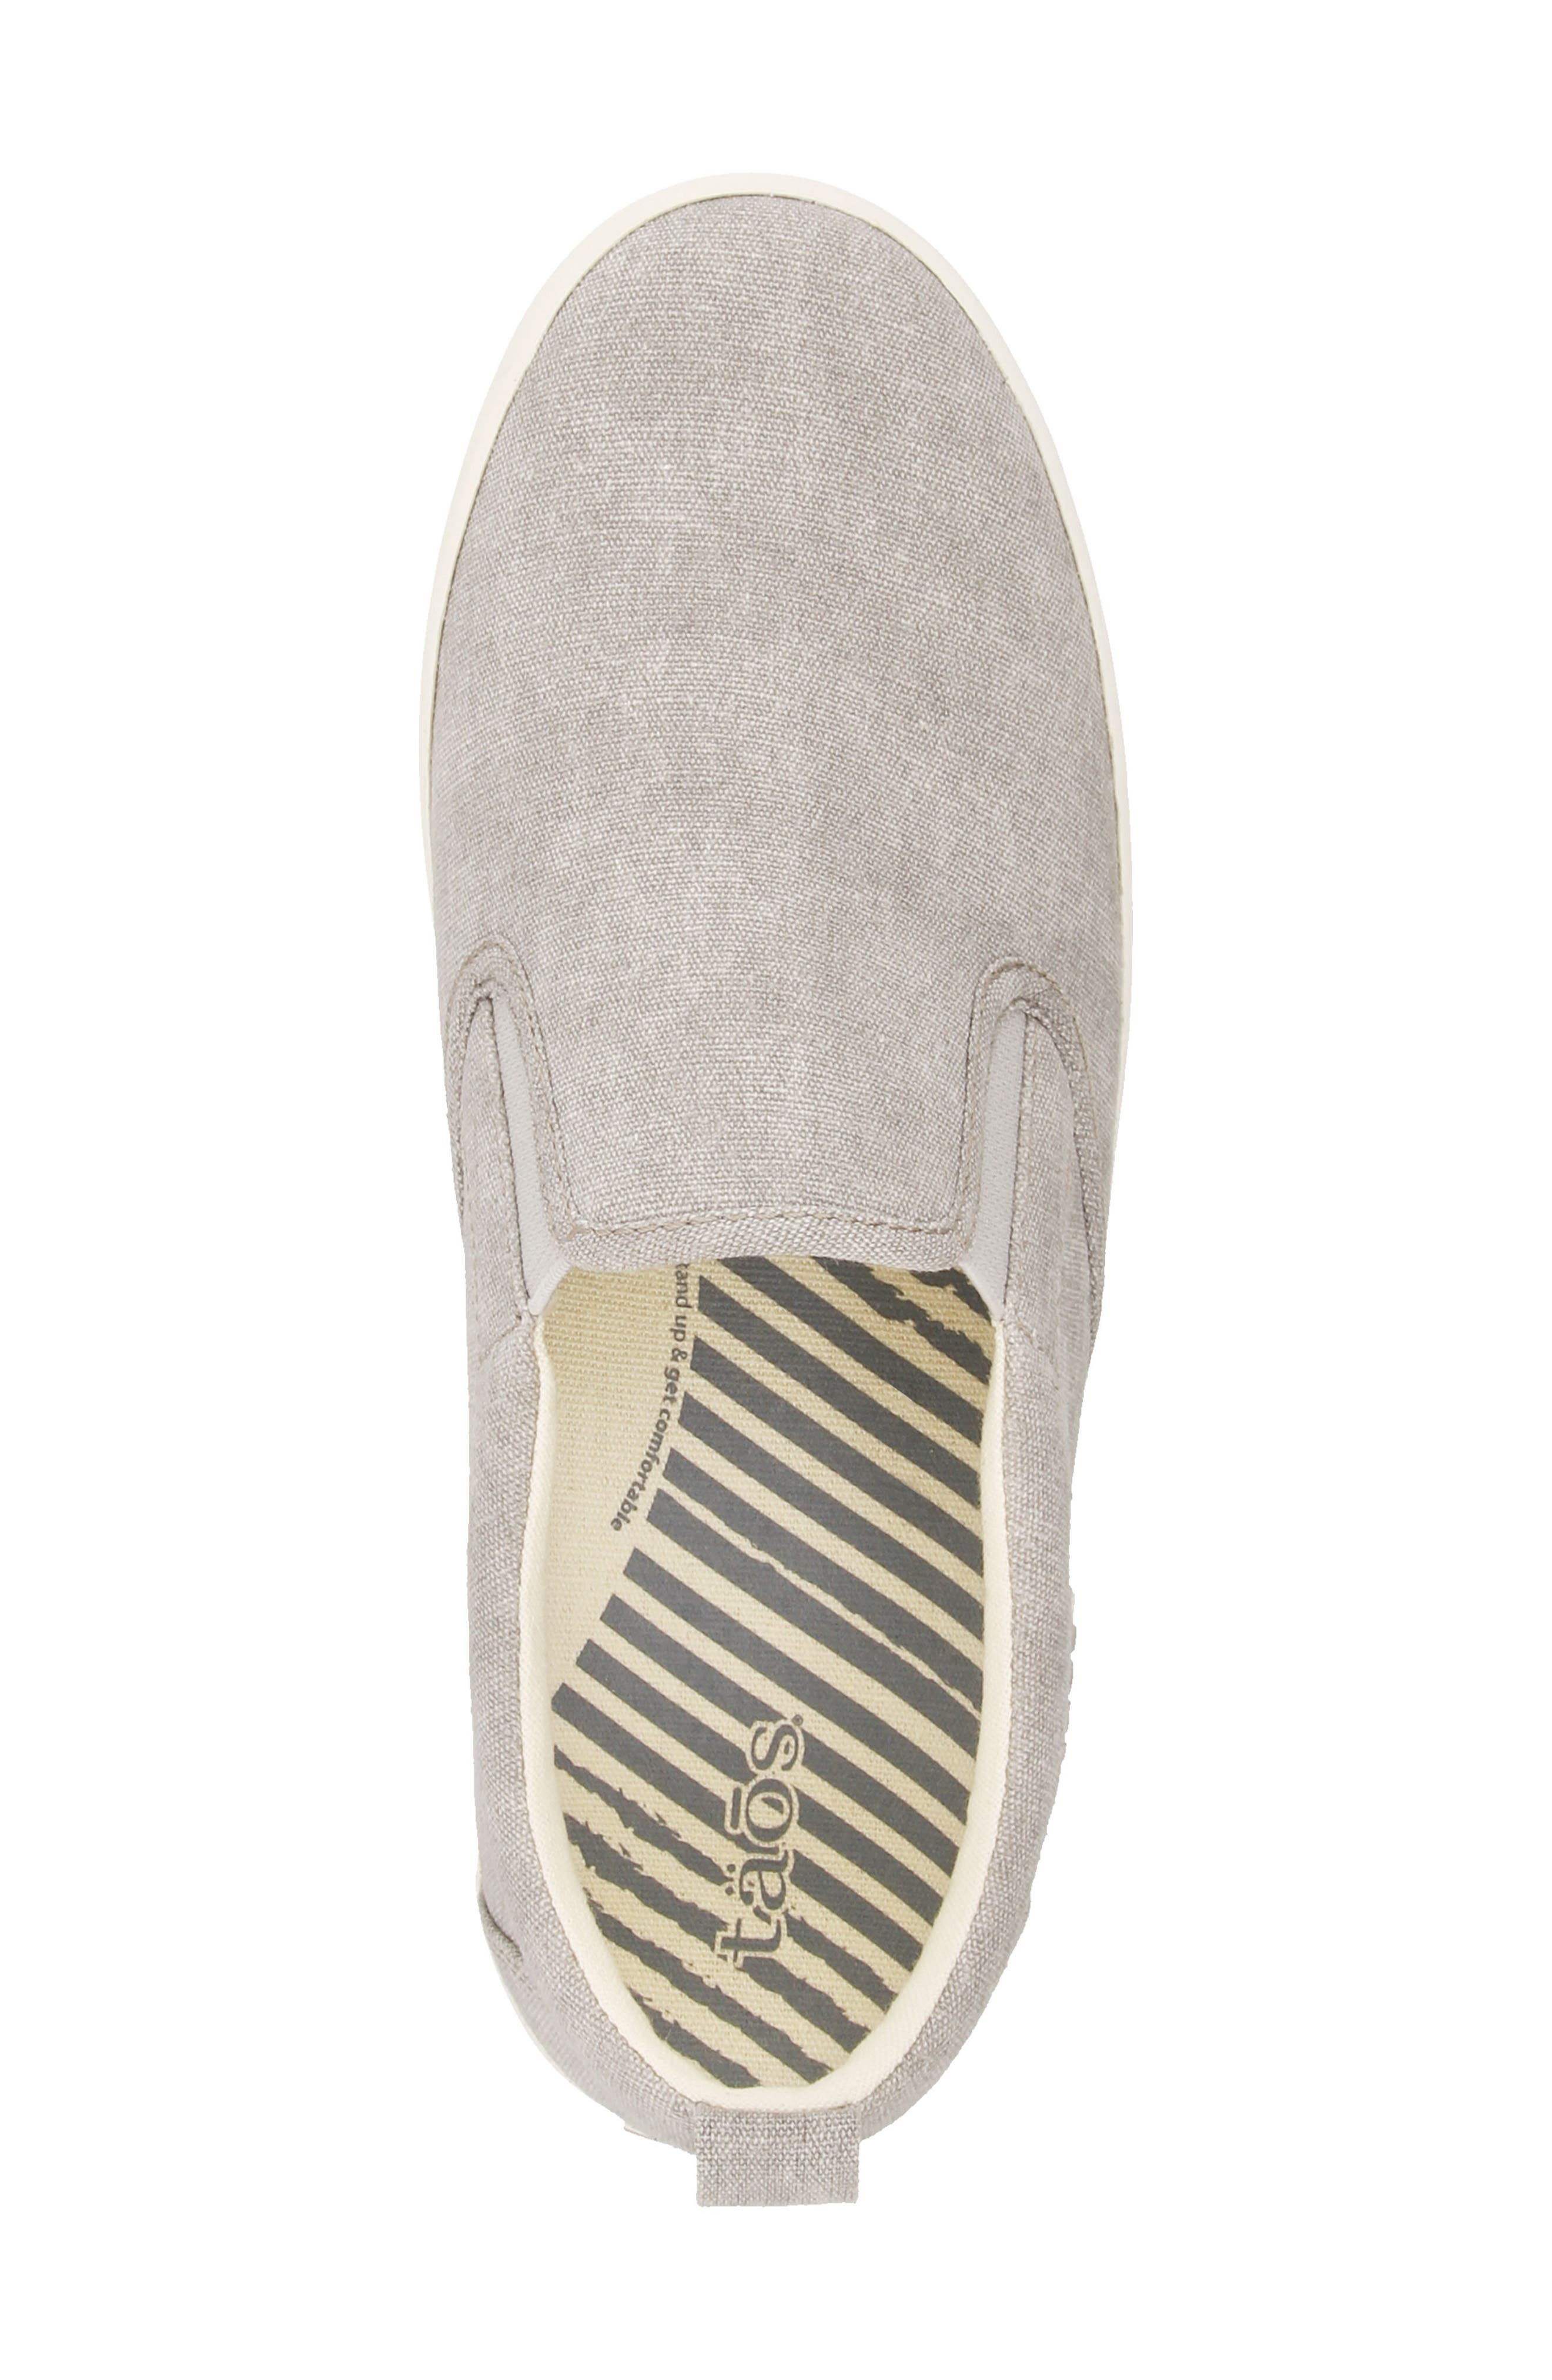 Dandy Slip-On Sneaker,                             Alternate thumbnail 4, color,                             GREY WASHED CANVAS